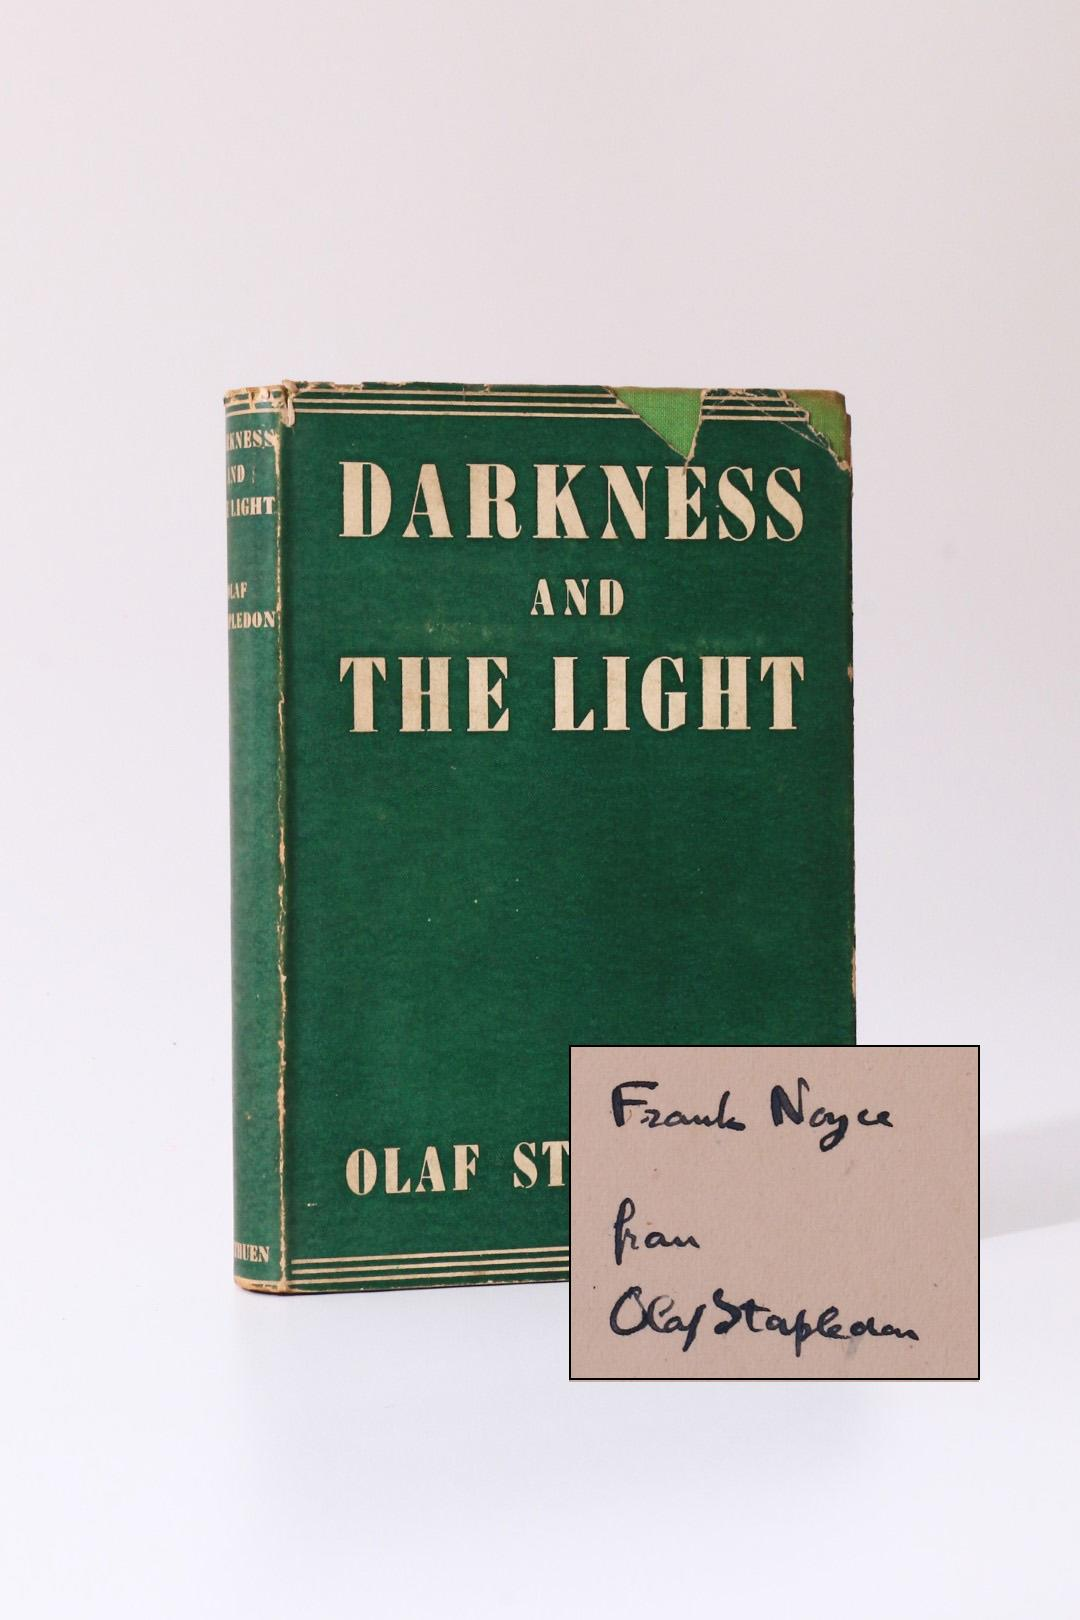 Olaf Stapledon - Darkness and the Light - Methuen, 1942, Signed First Edition.